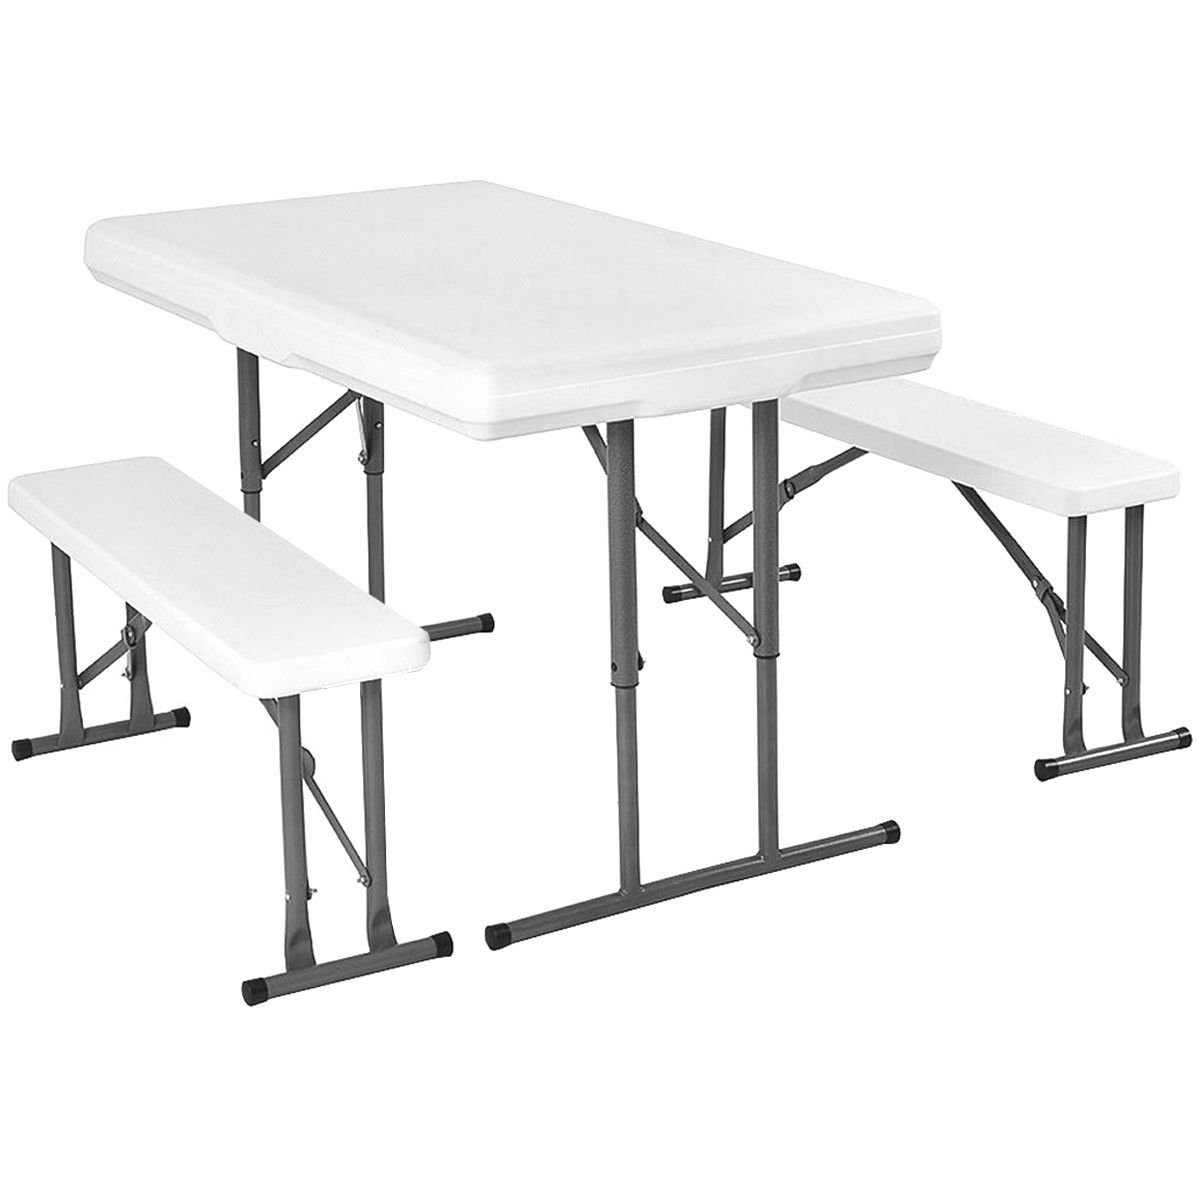 Giantex Table and Benches Set Chair Seat Folding Picnic Patio Garden Outdoor Furniture OP3091